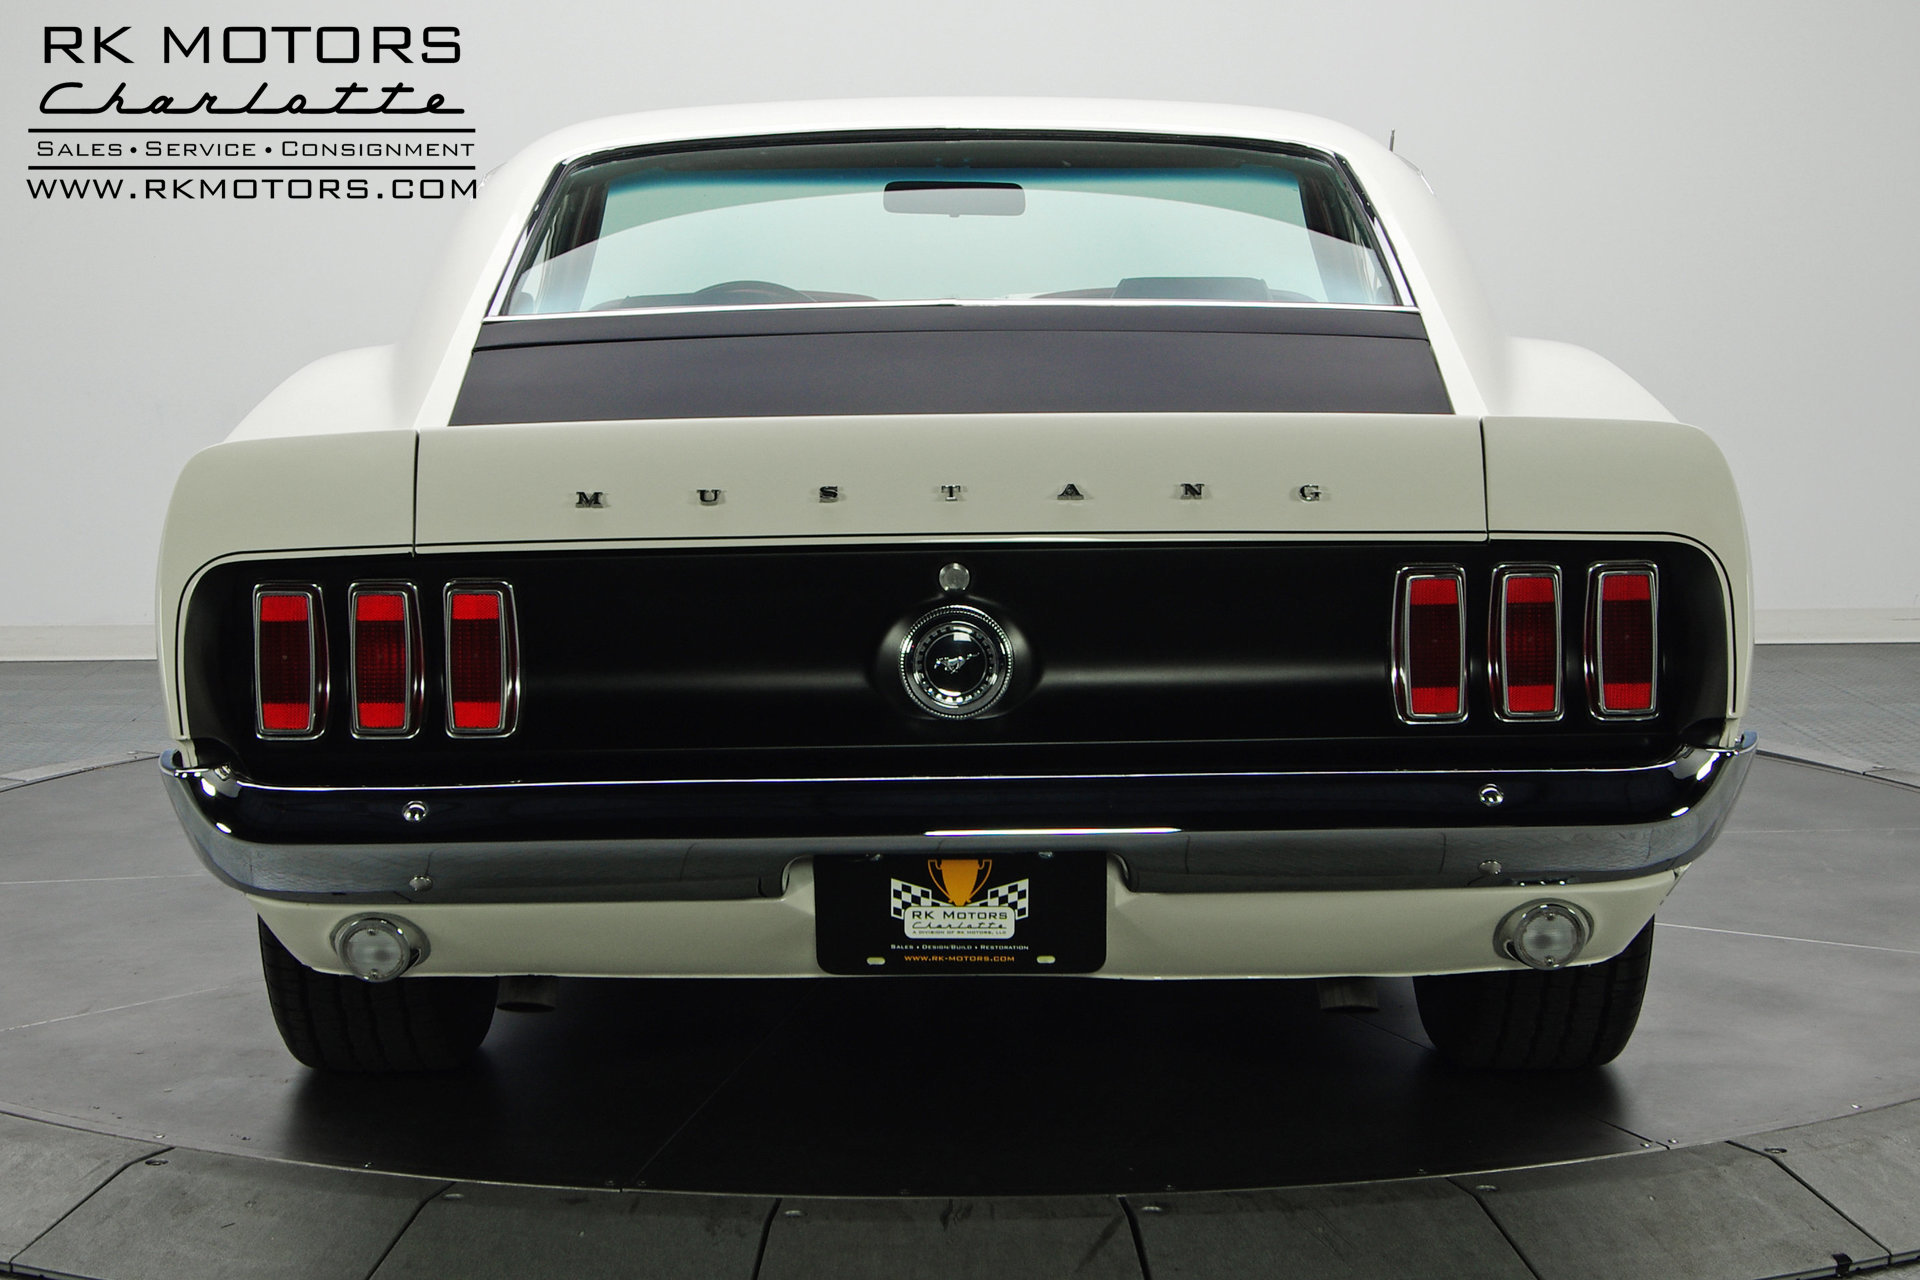 132780 1969 Ford Mustang Rk Motors Classic And Performance Cars Msrp For Sale